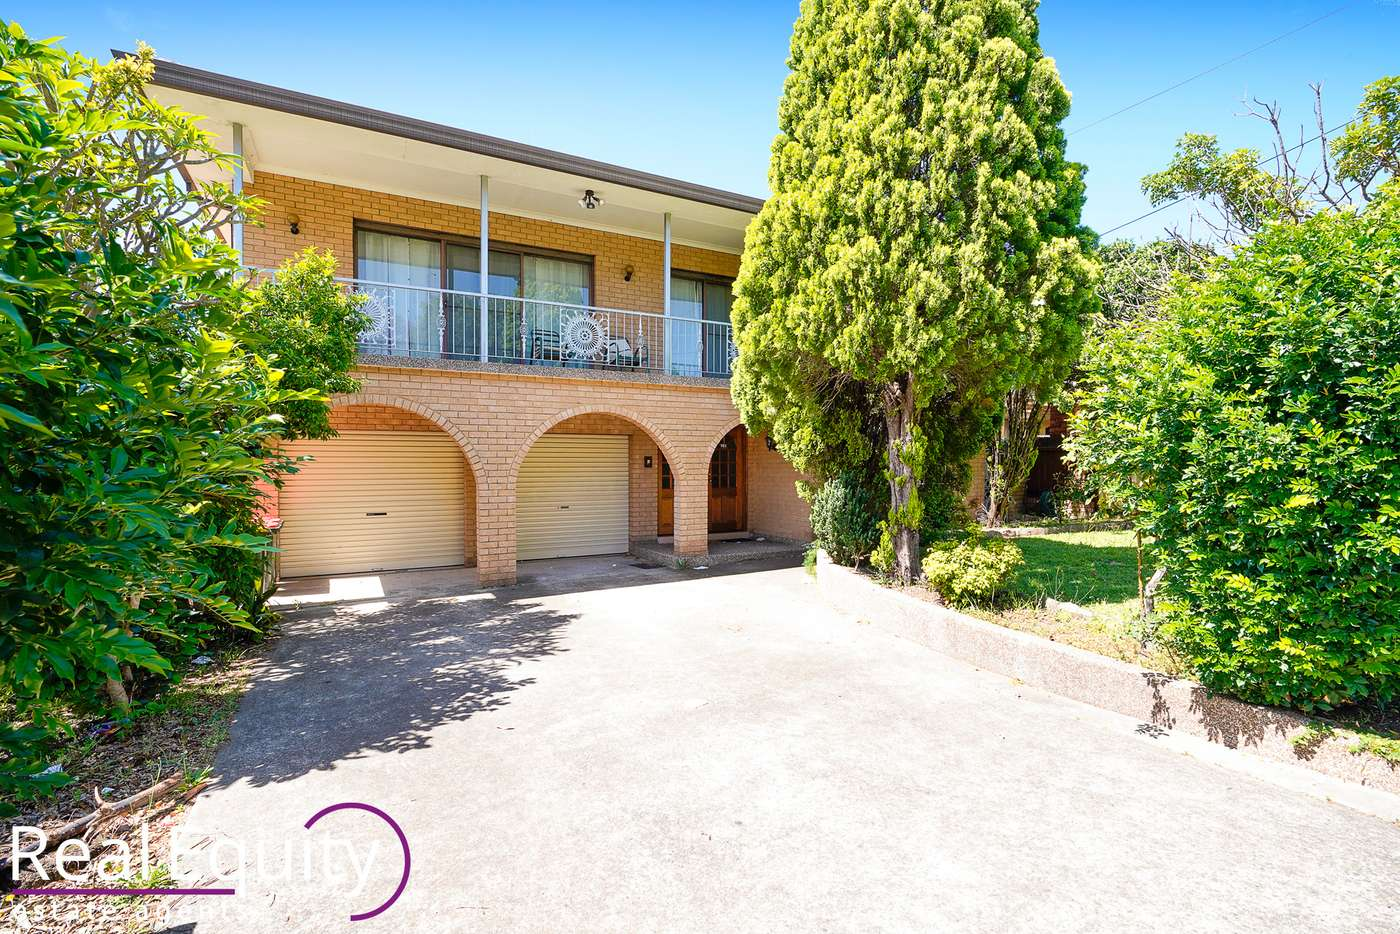 Main view of Homely house listing, 28A Darling Avenue, Lurnea NSW 2170